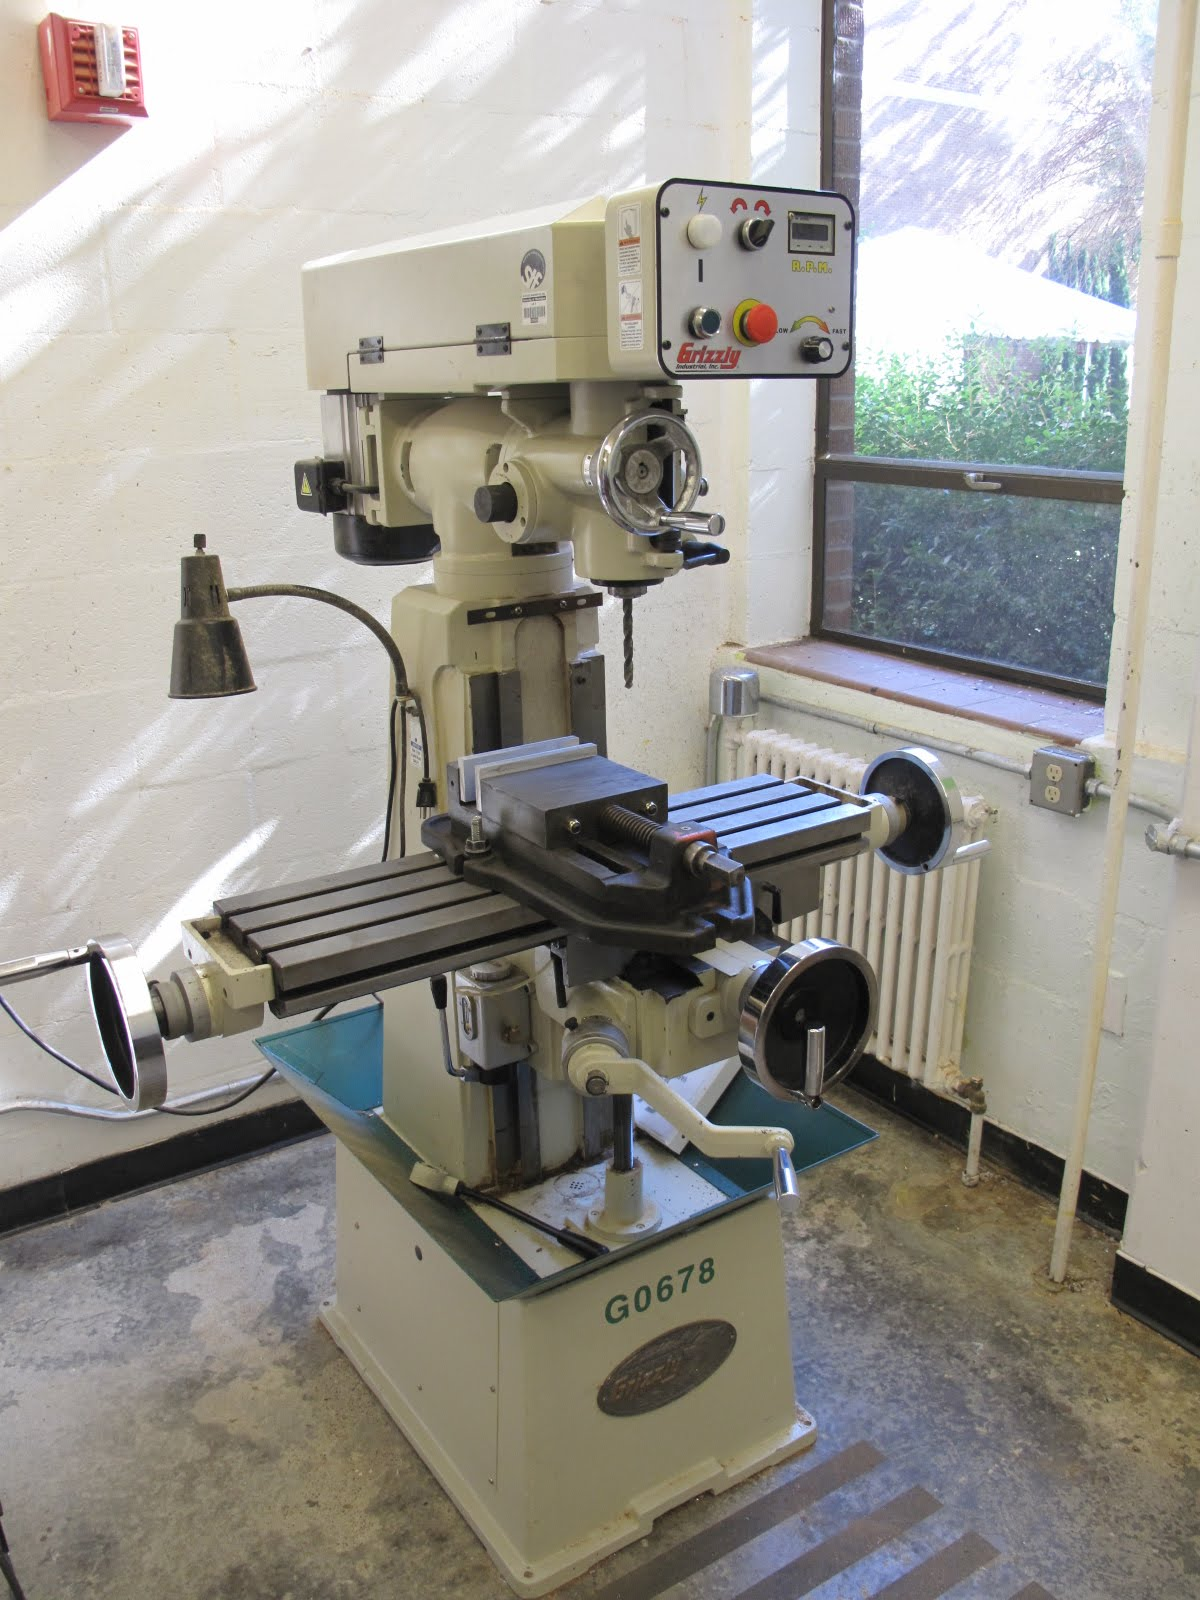 Grizzly Manual Milling Machine